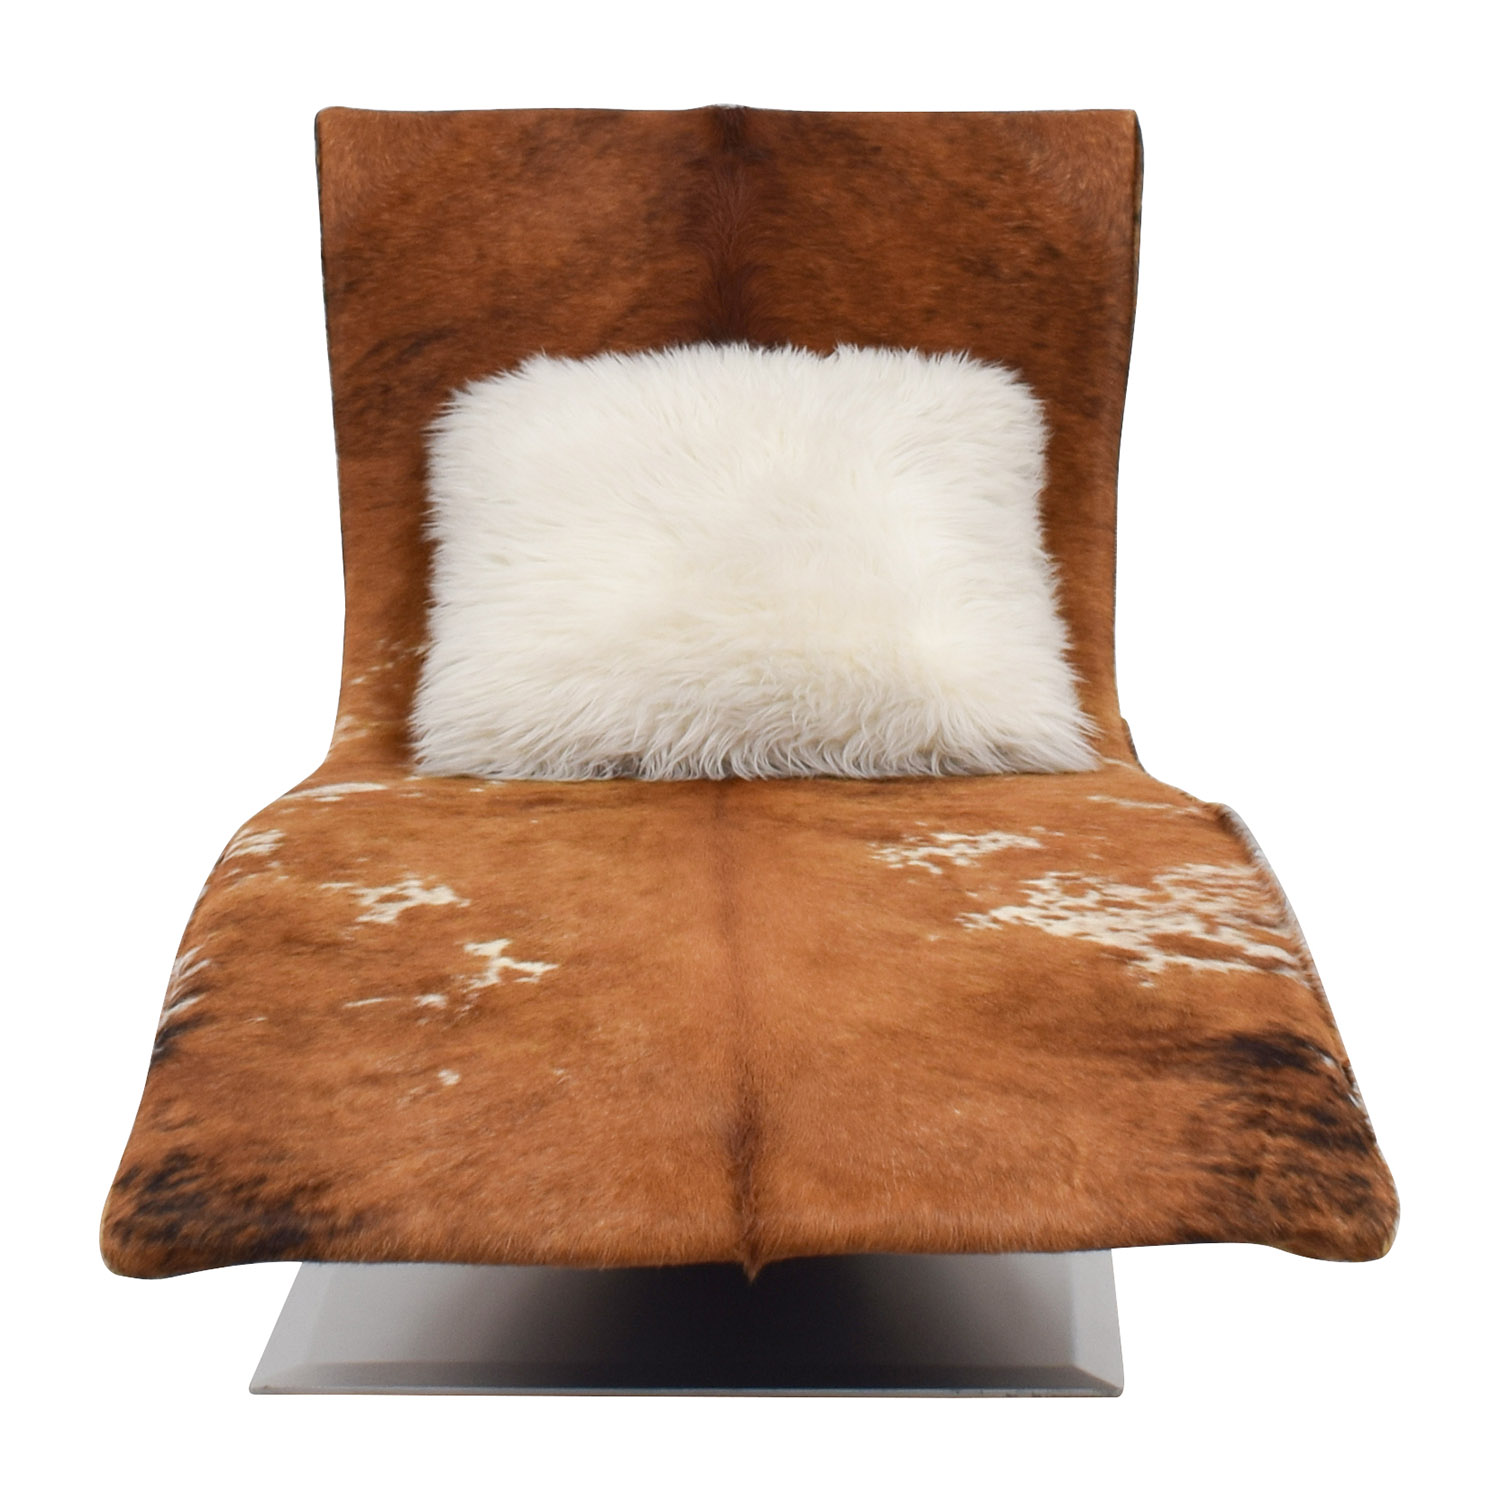 Leather Cow Hide Accent Chaise Chair dimensions